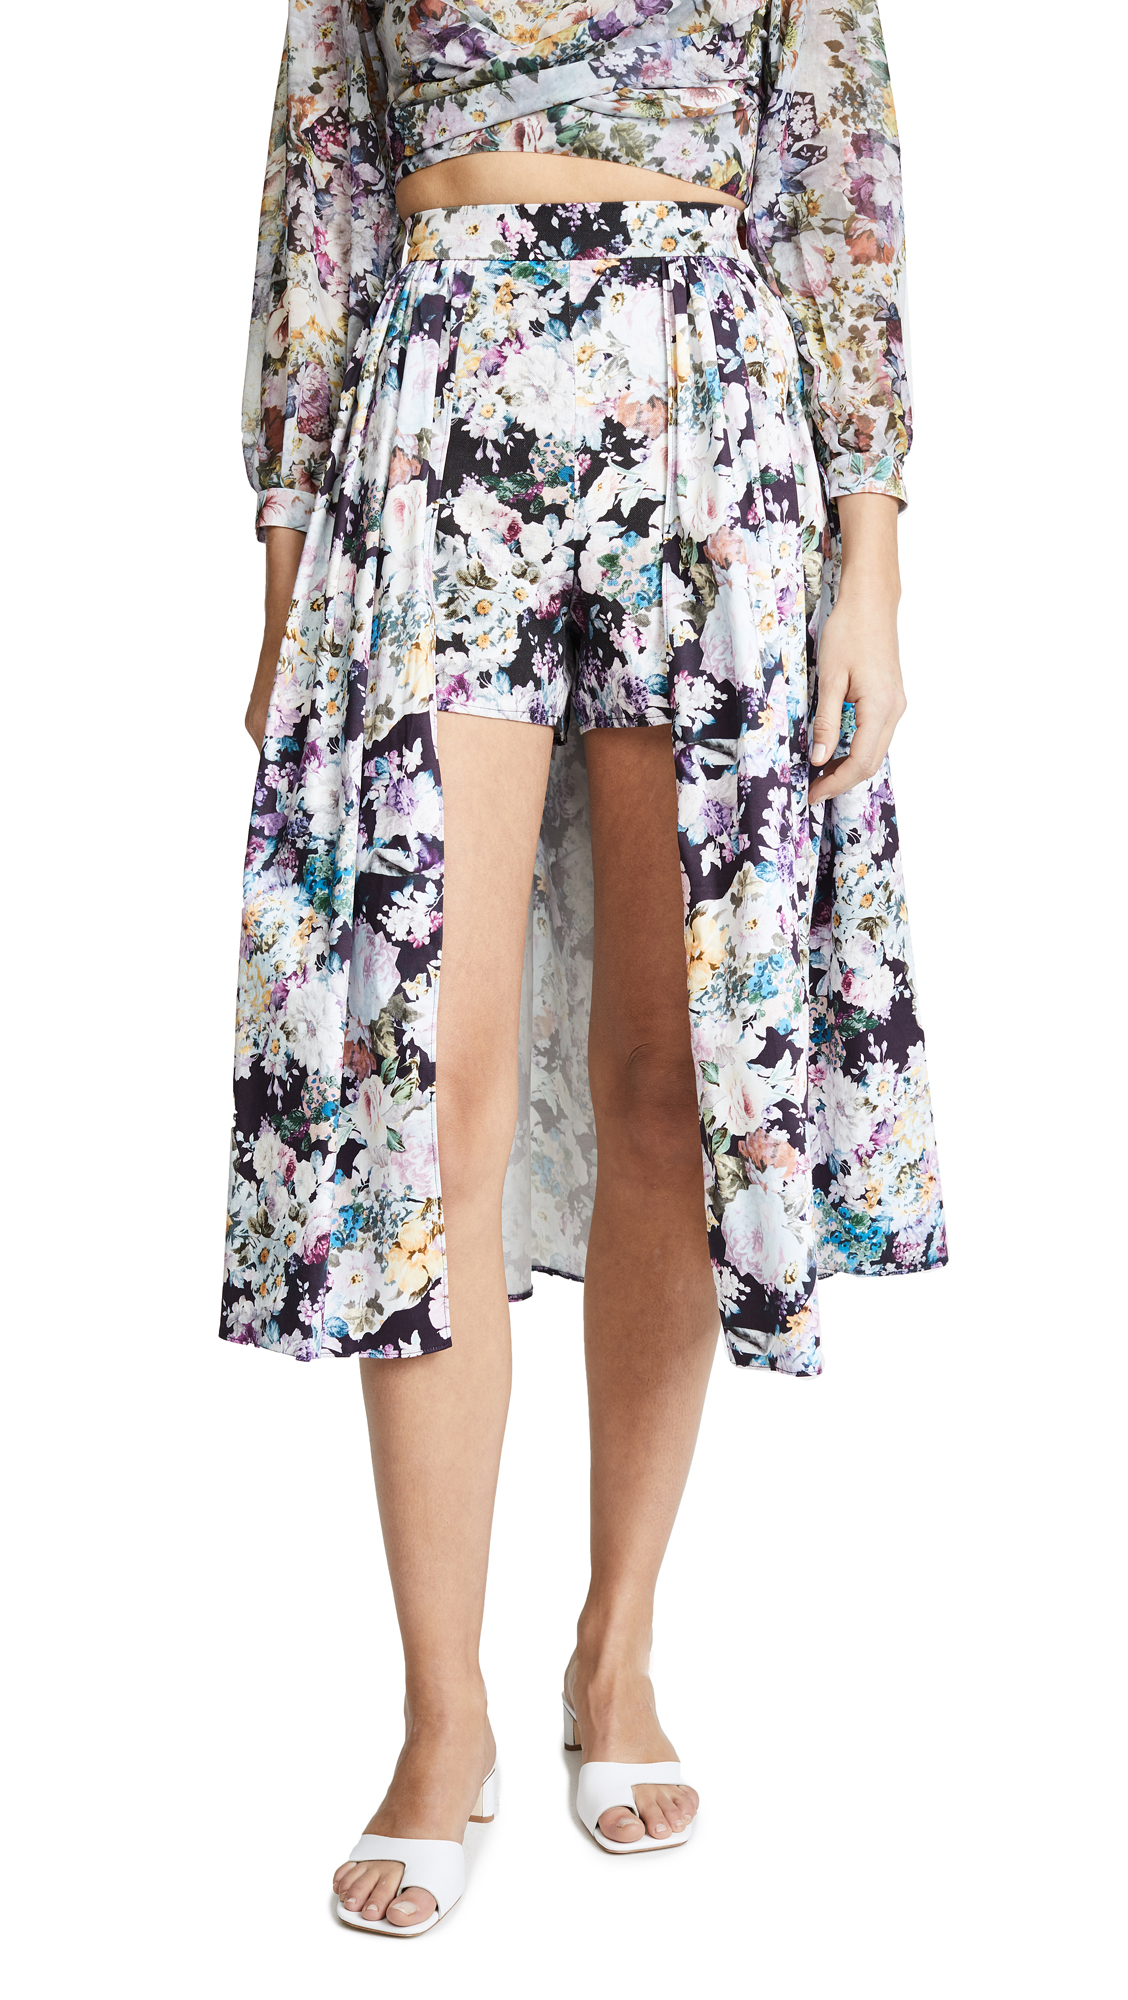 Skirted Shorts, Pink/Purple Floral